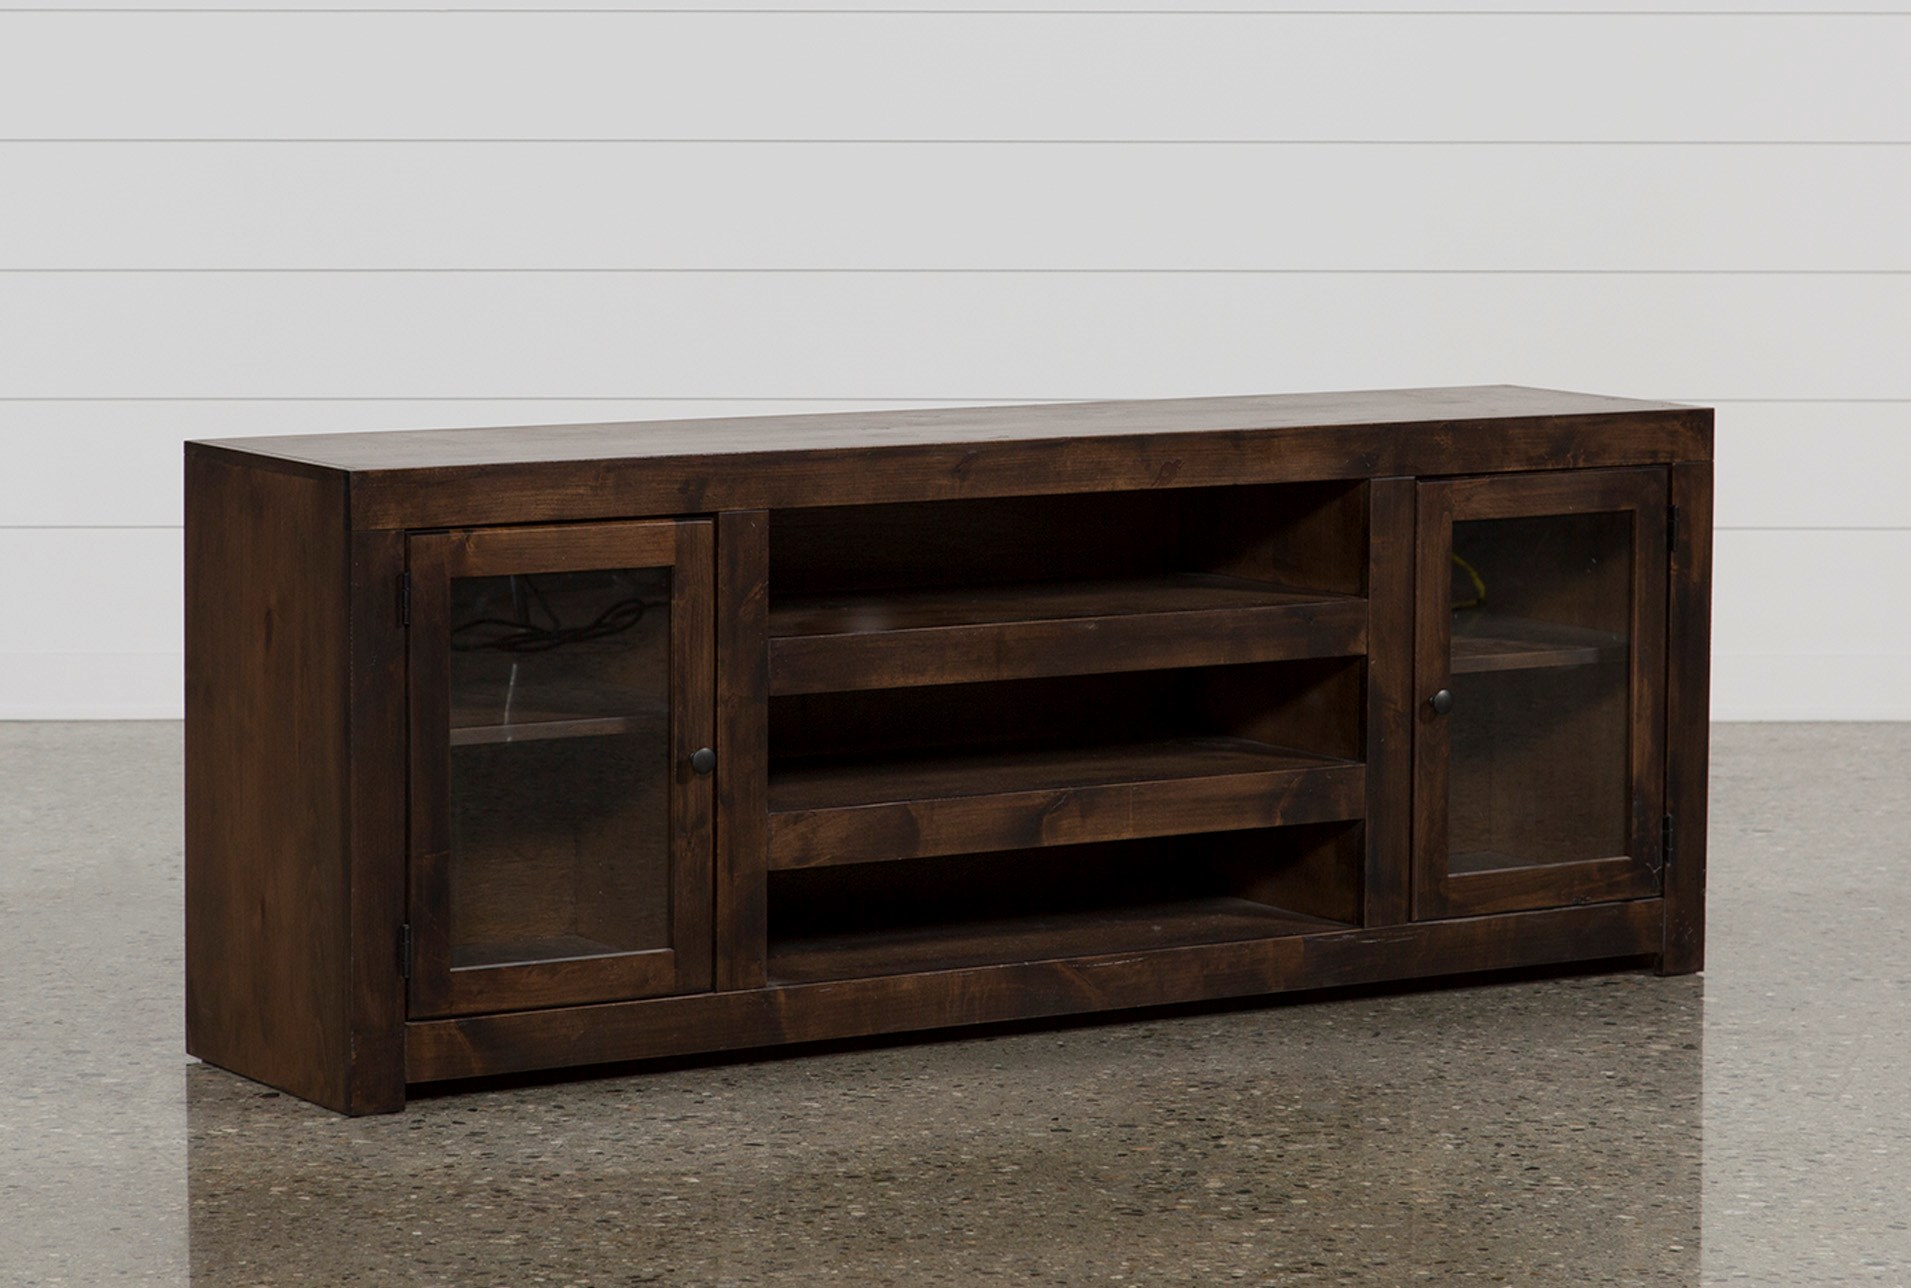 Walton 72 Inch Tv Stand Qty 1 Has Been Successfully Added To Your Cart